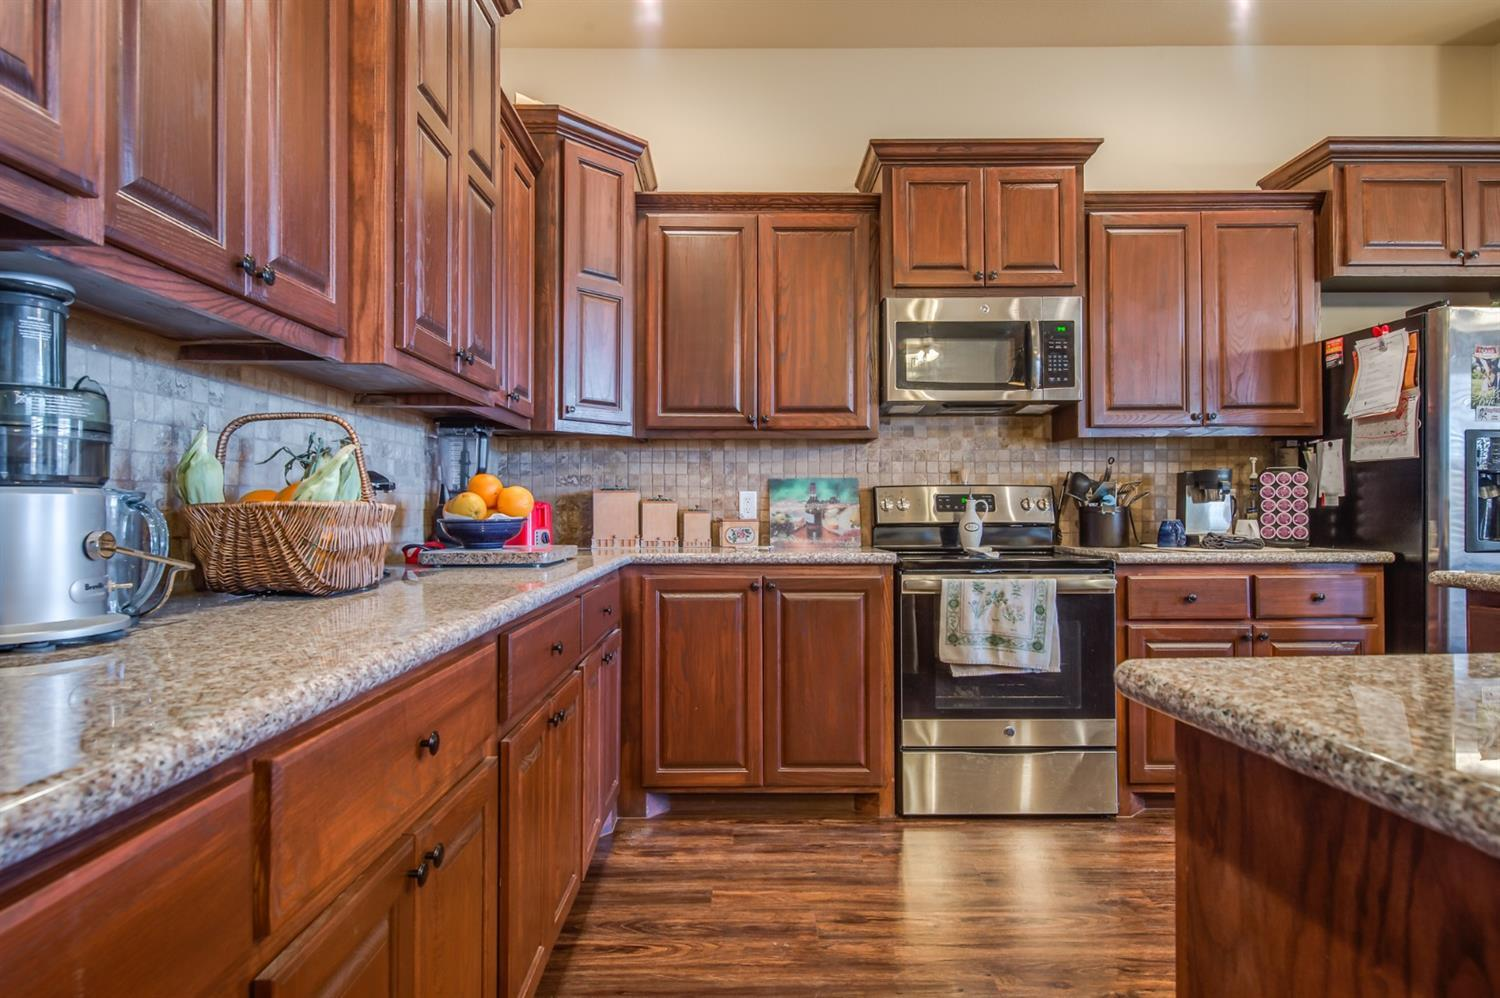 Listing: 8323 County Road 6000, Shallowater, TX.| MLS# 201805667 ...